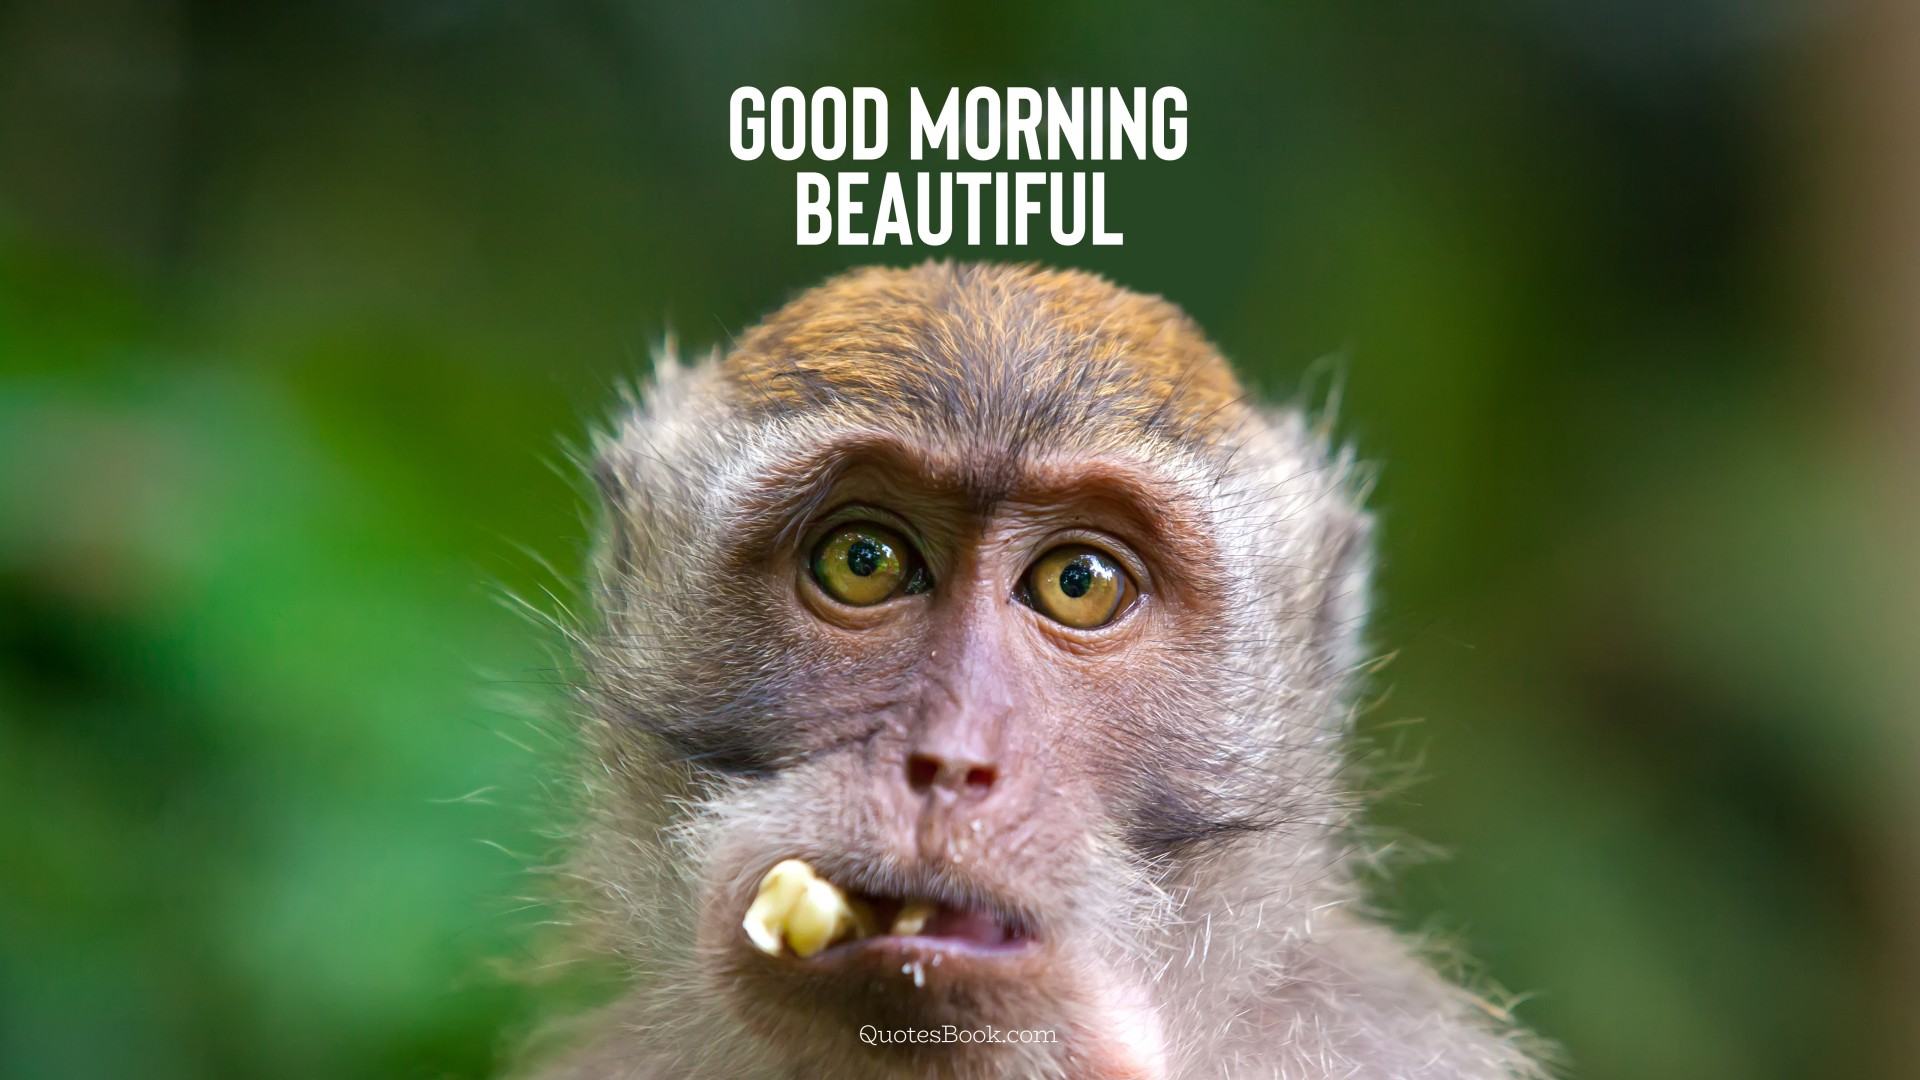 Good morning beautiful - QuotesBook